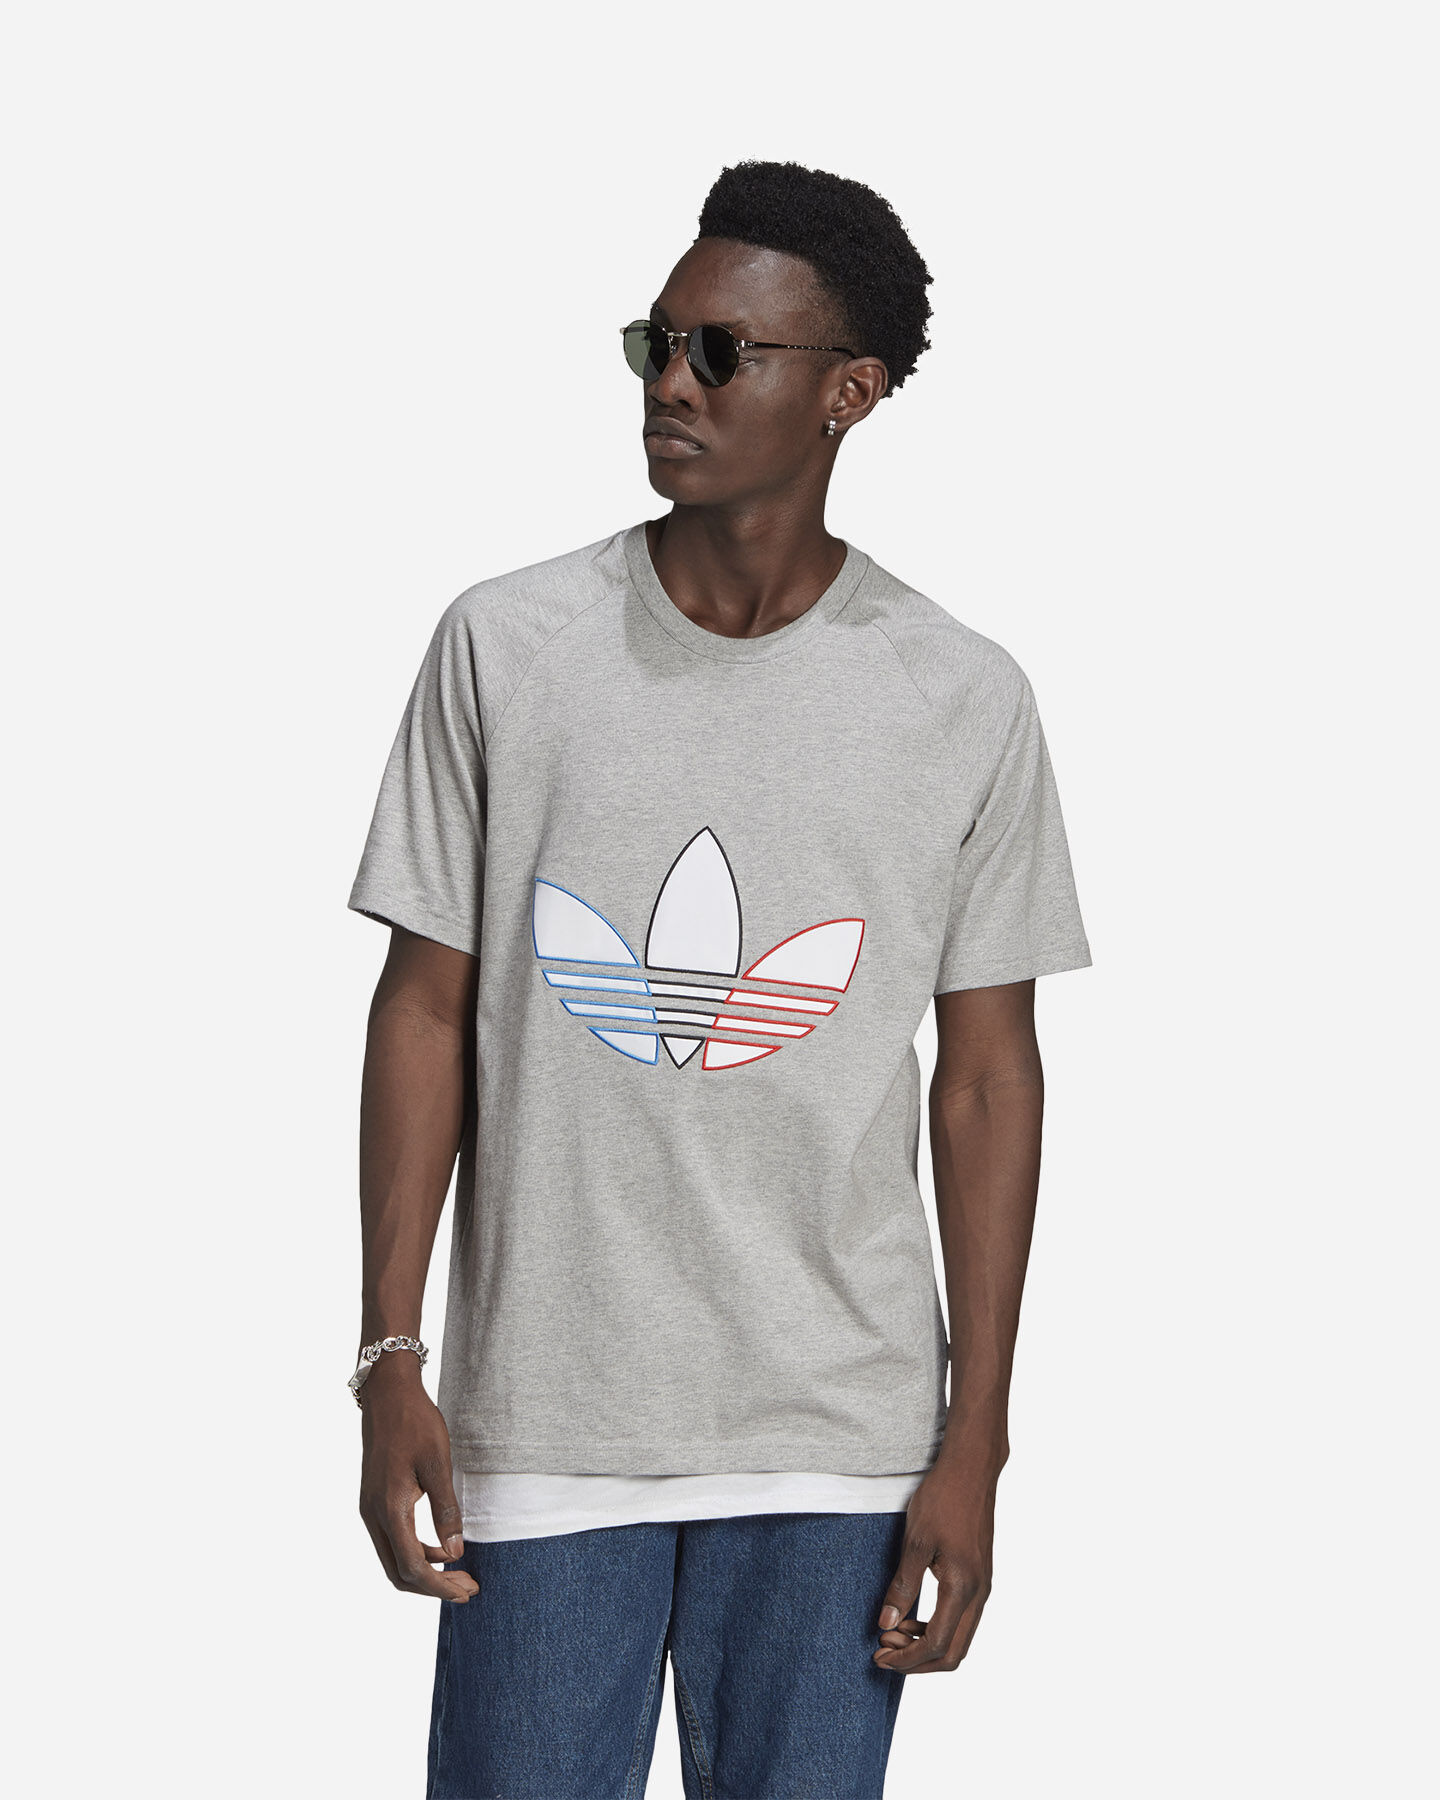 T-Shirt ADIDAS SPACE RACE M S5285698 scatto 1